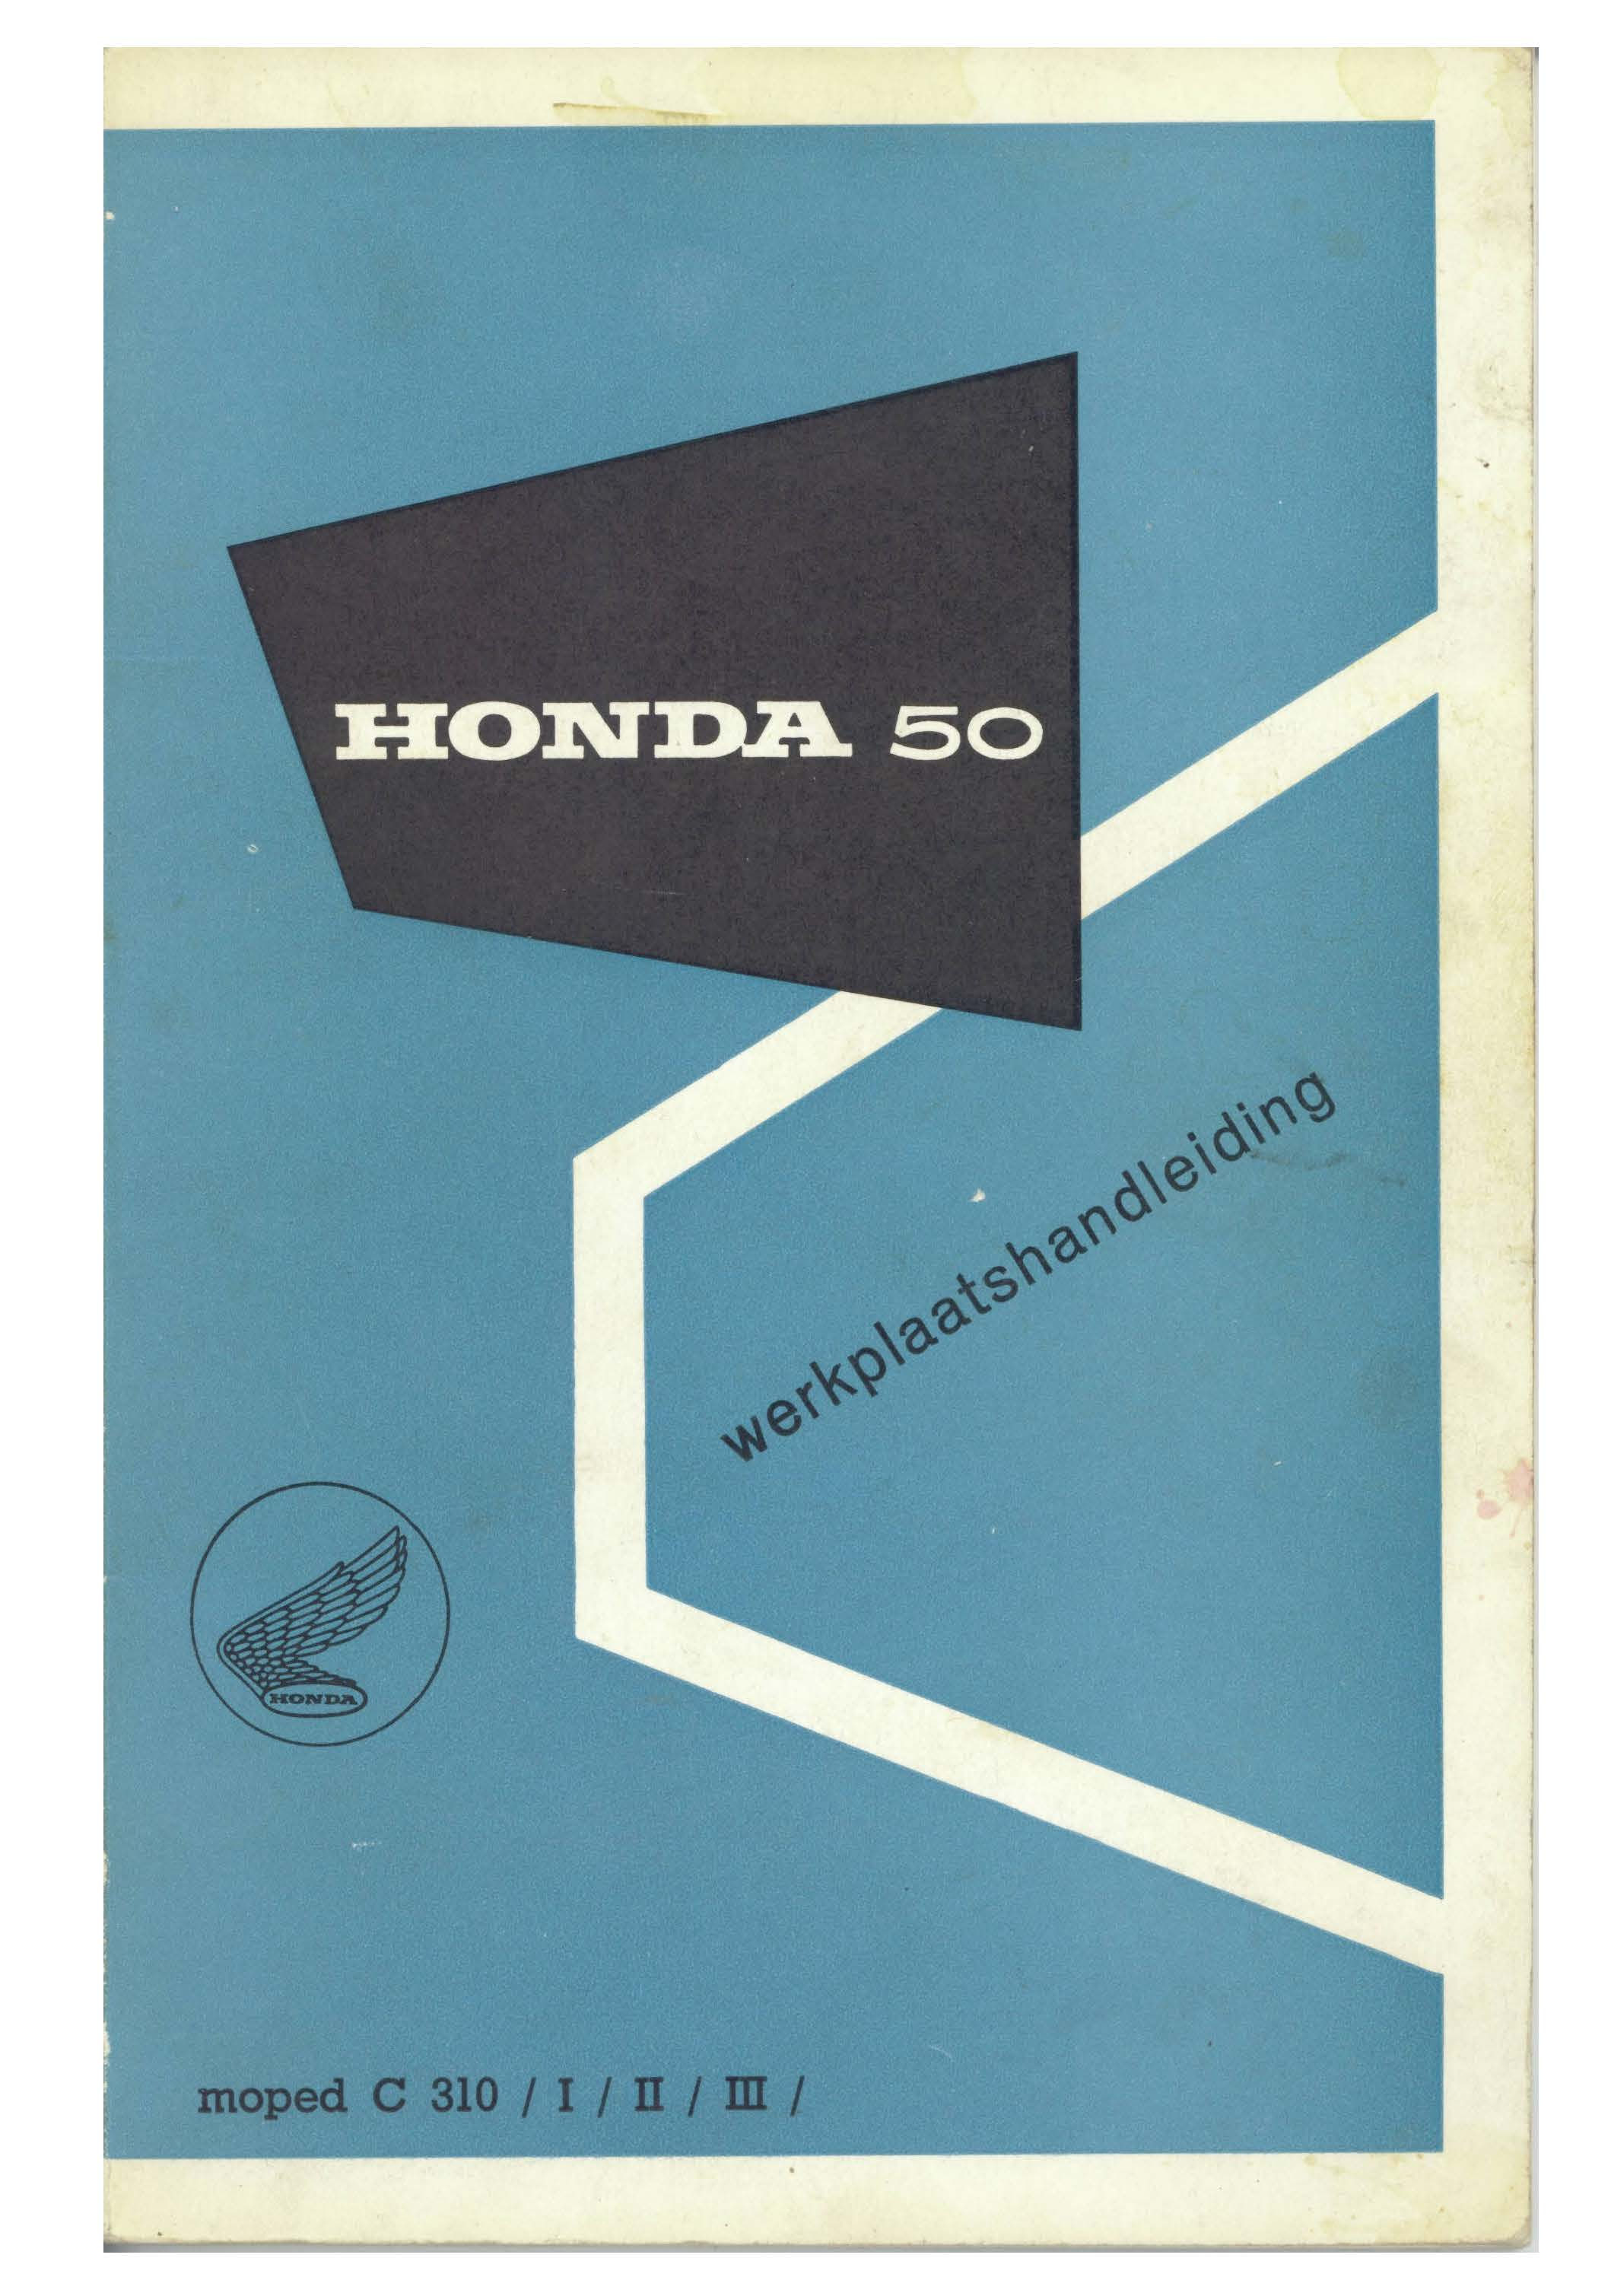 Workshop manual for Honda C310A (Mk. 1, 2 and 3)